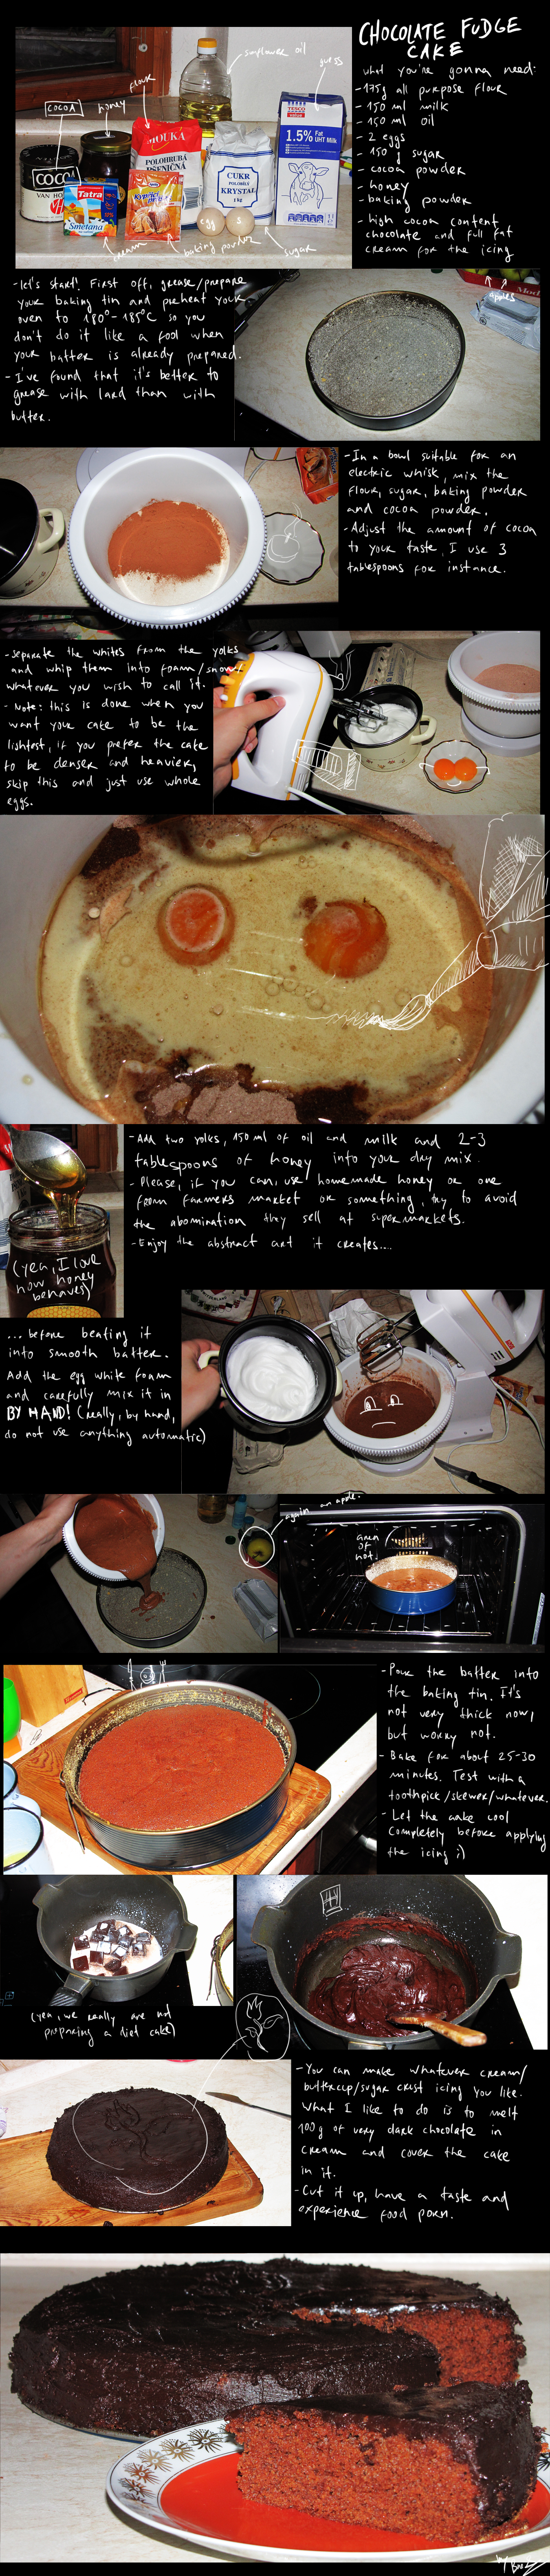 How to make chocolate fudge cake by BrocX